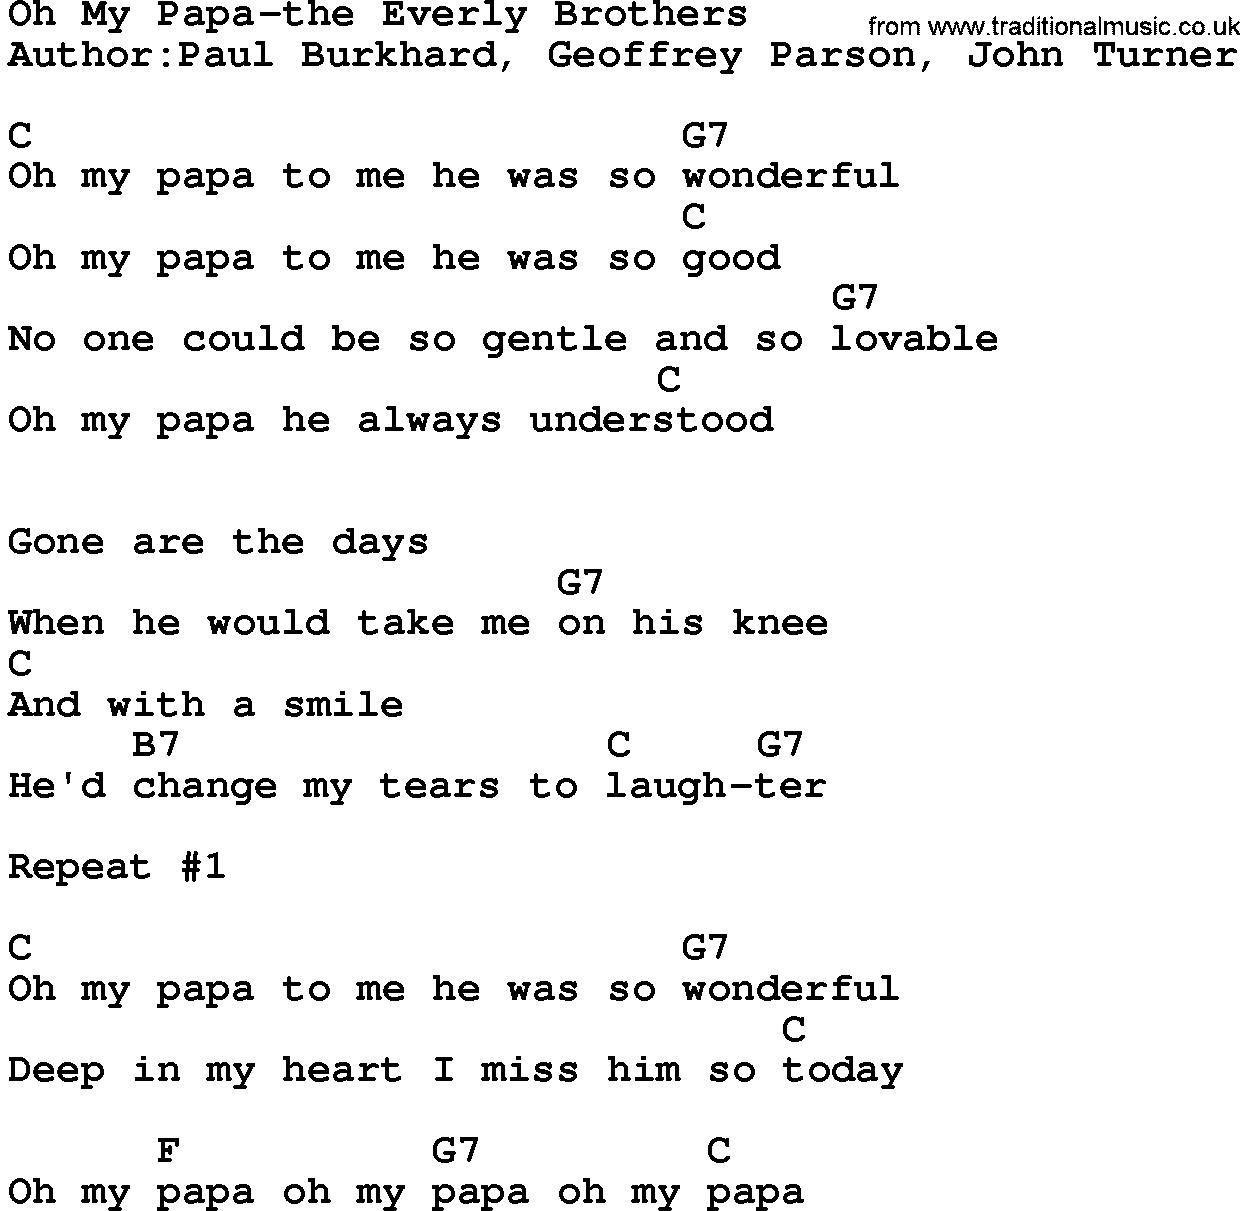 graphic regarding All About My Papa Printable named State New music:Oh My Papa-The Everly Brothers Lyrics and Chords